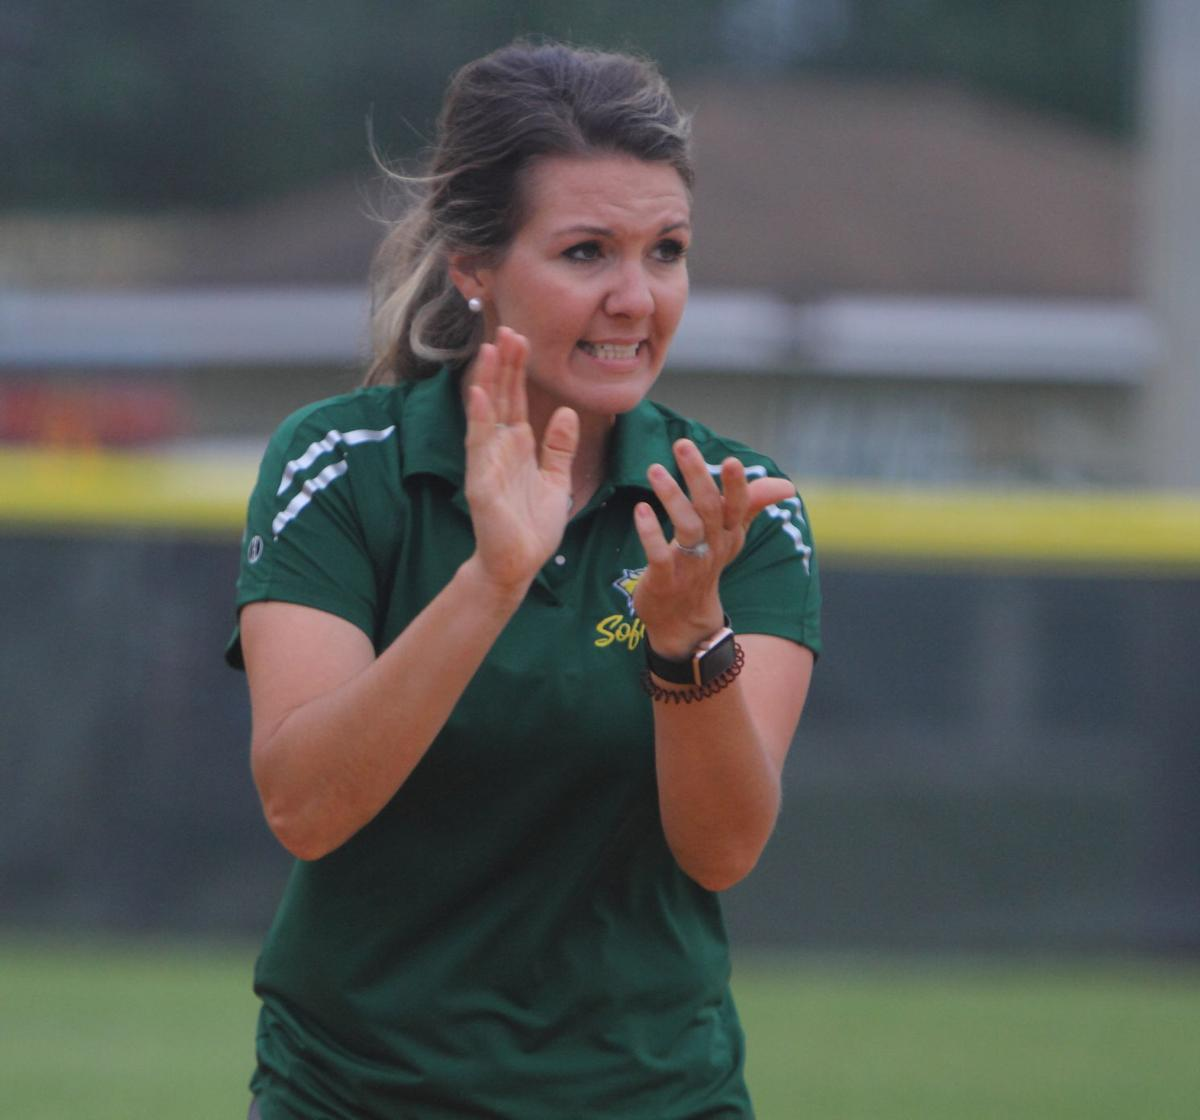 Walker-EA softball: Hali Westmoreland Fletcher